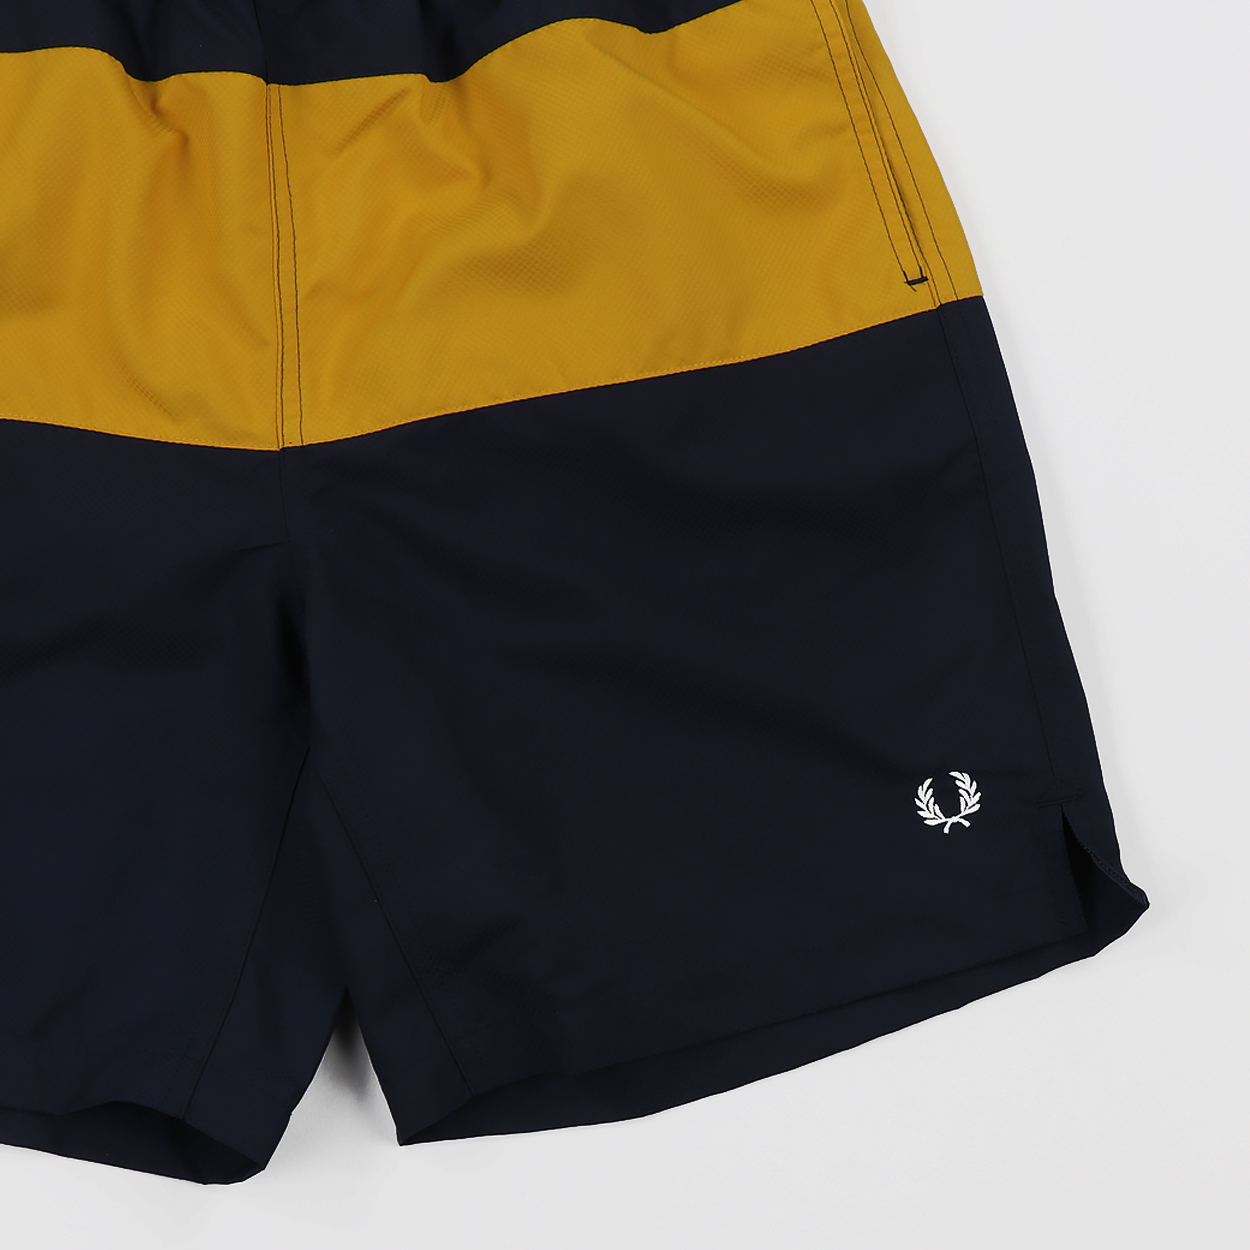 6a9cc218bd A pair of swimming shorts from Fred Perry made from 100% polyester with a  mesh lining. They feature a panelled colourblock pattern and an embroidered  logo ...